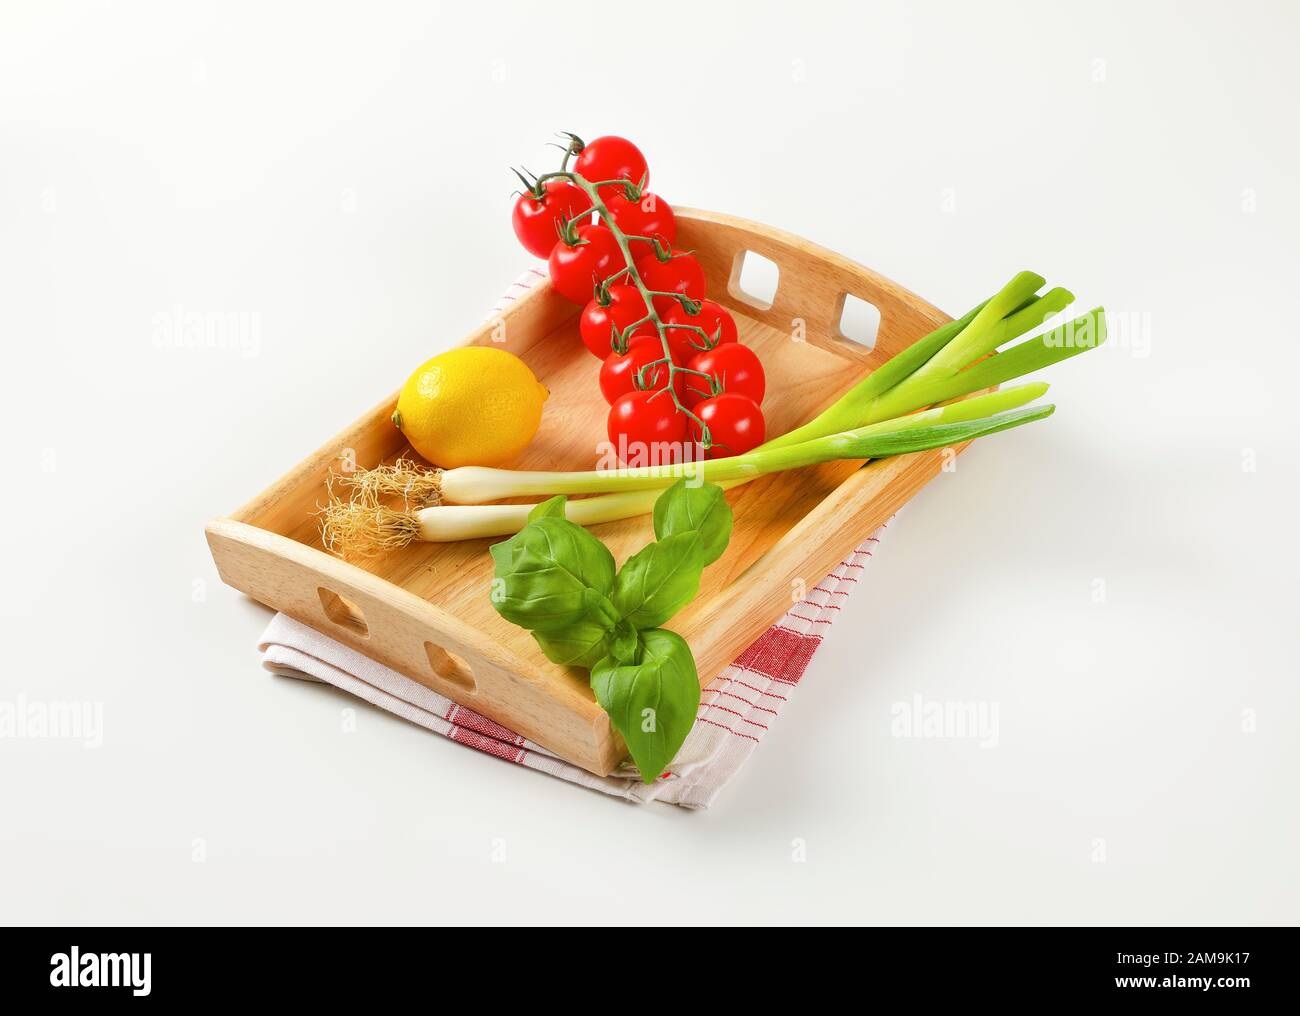 Fresh Vegetables And Lemon On Wooden Serving Tray Stock Photo Alamy